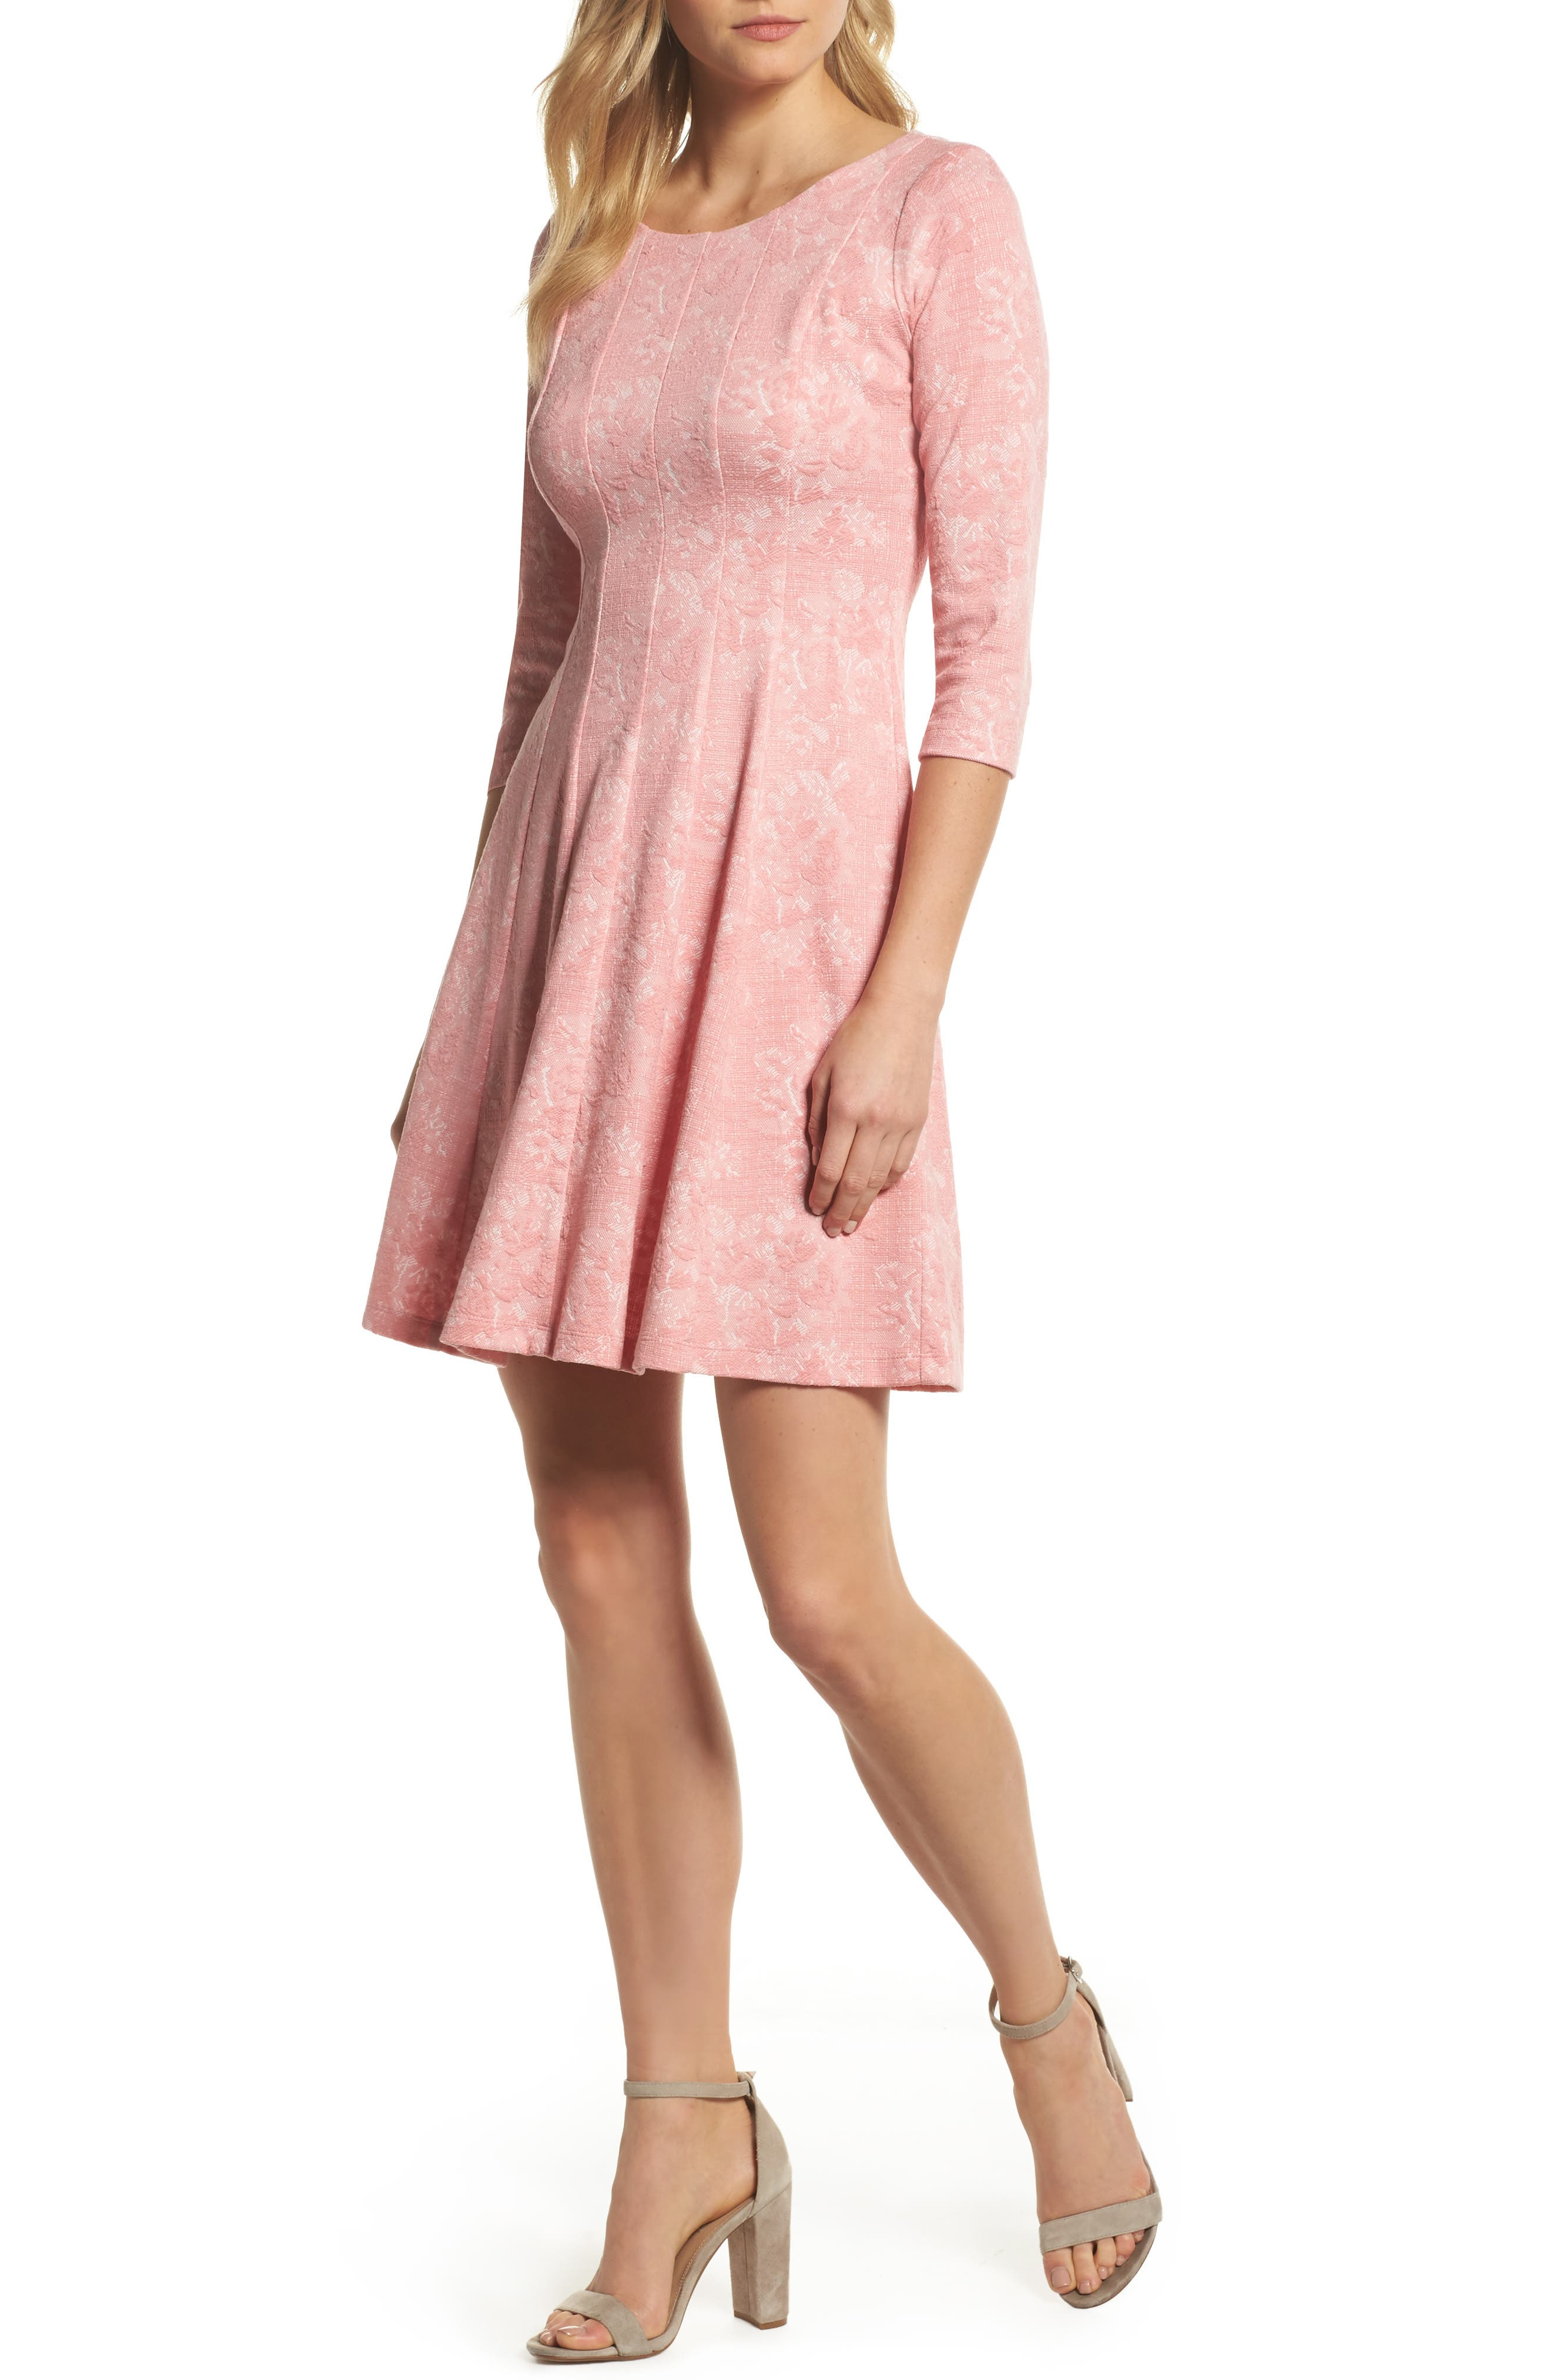 Main Image - Taylor Dresses Jacquard Knit Fit & Flare Dress